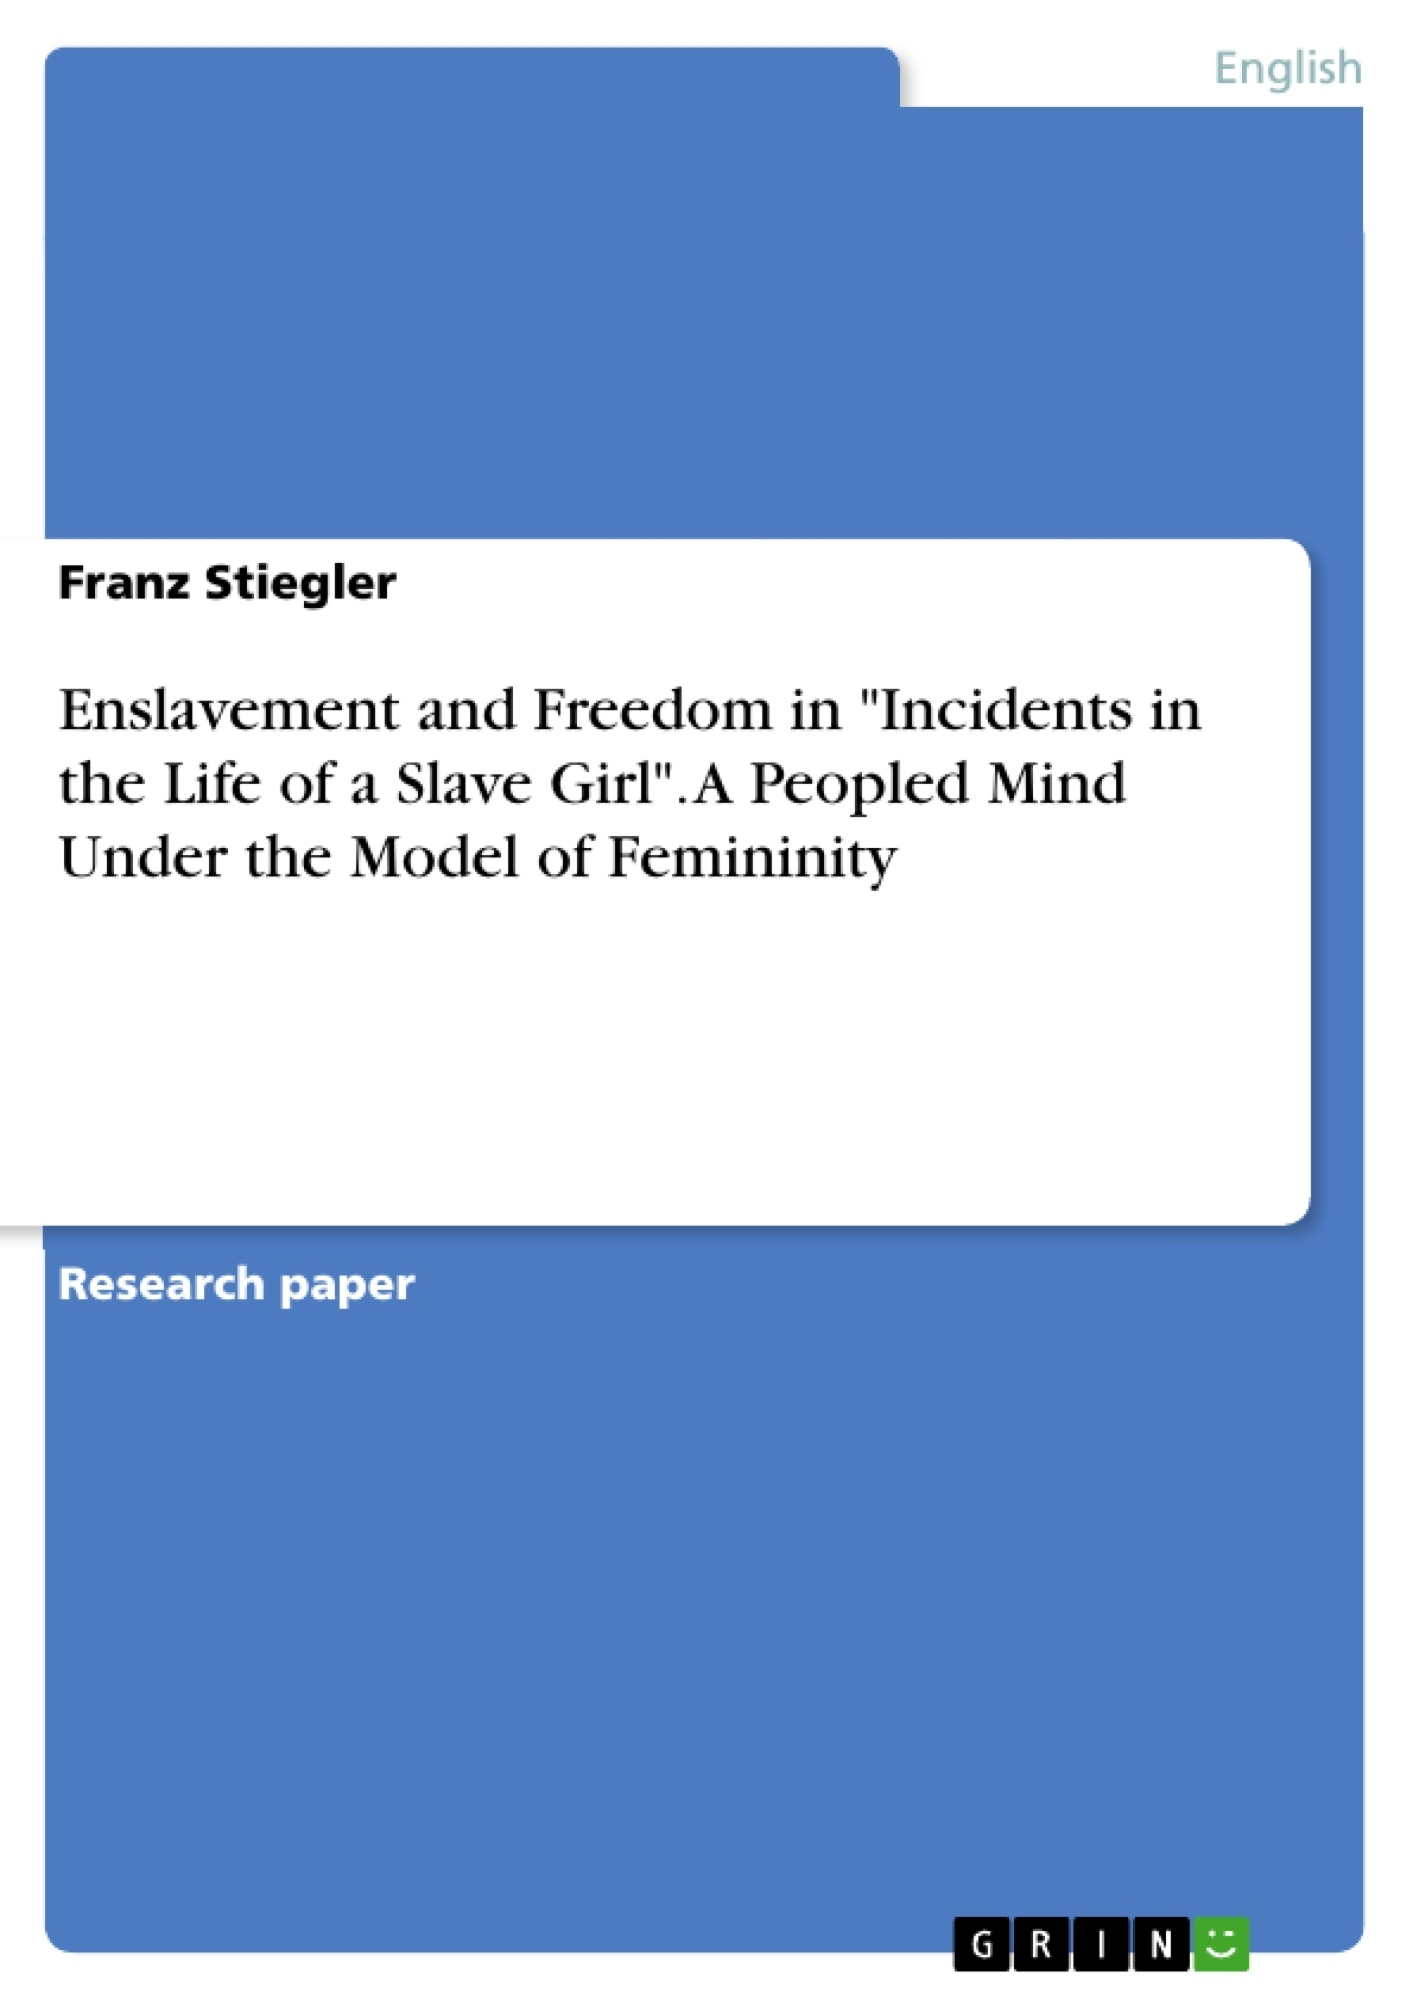 """Title: Enslavement and Freedom in """"Incidents in the Life of a Slave Girl"""". A Peopled Mind Under the Model of Femininity"""